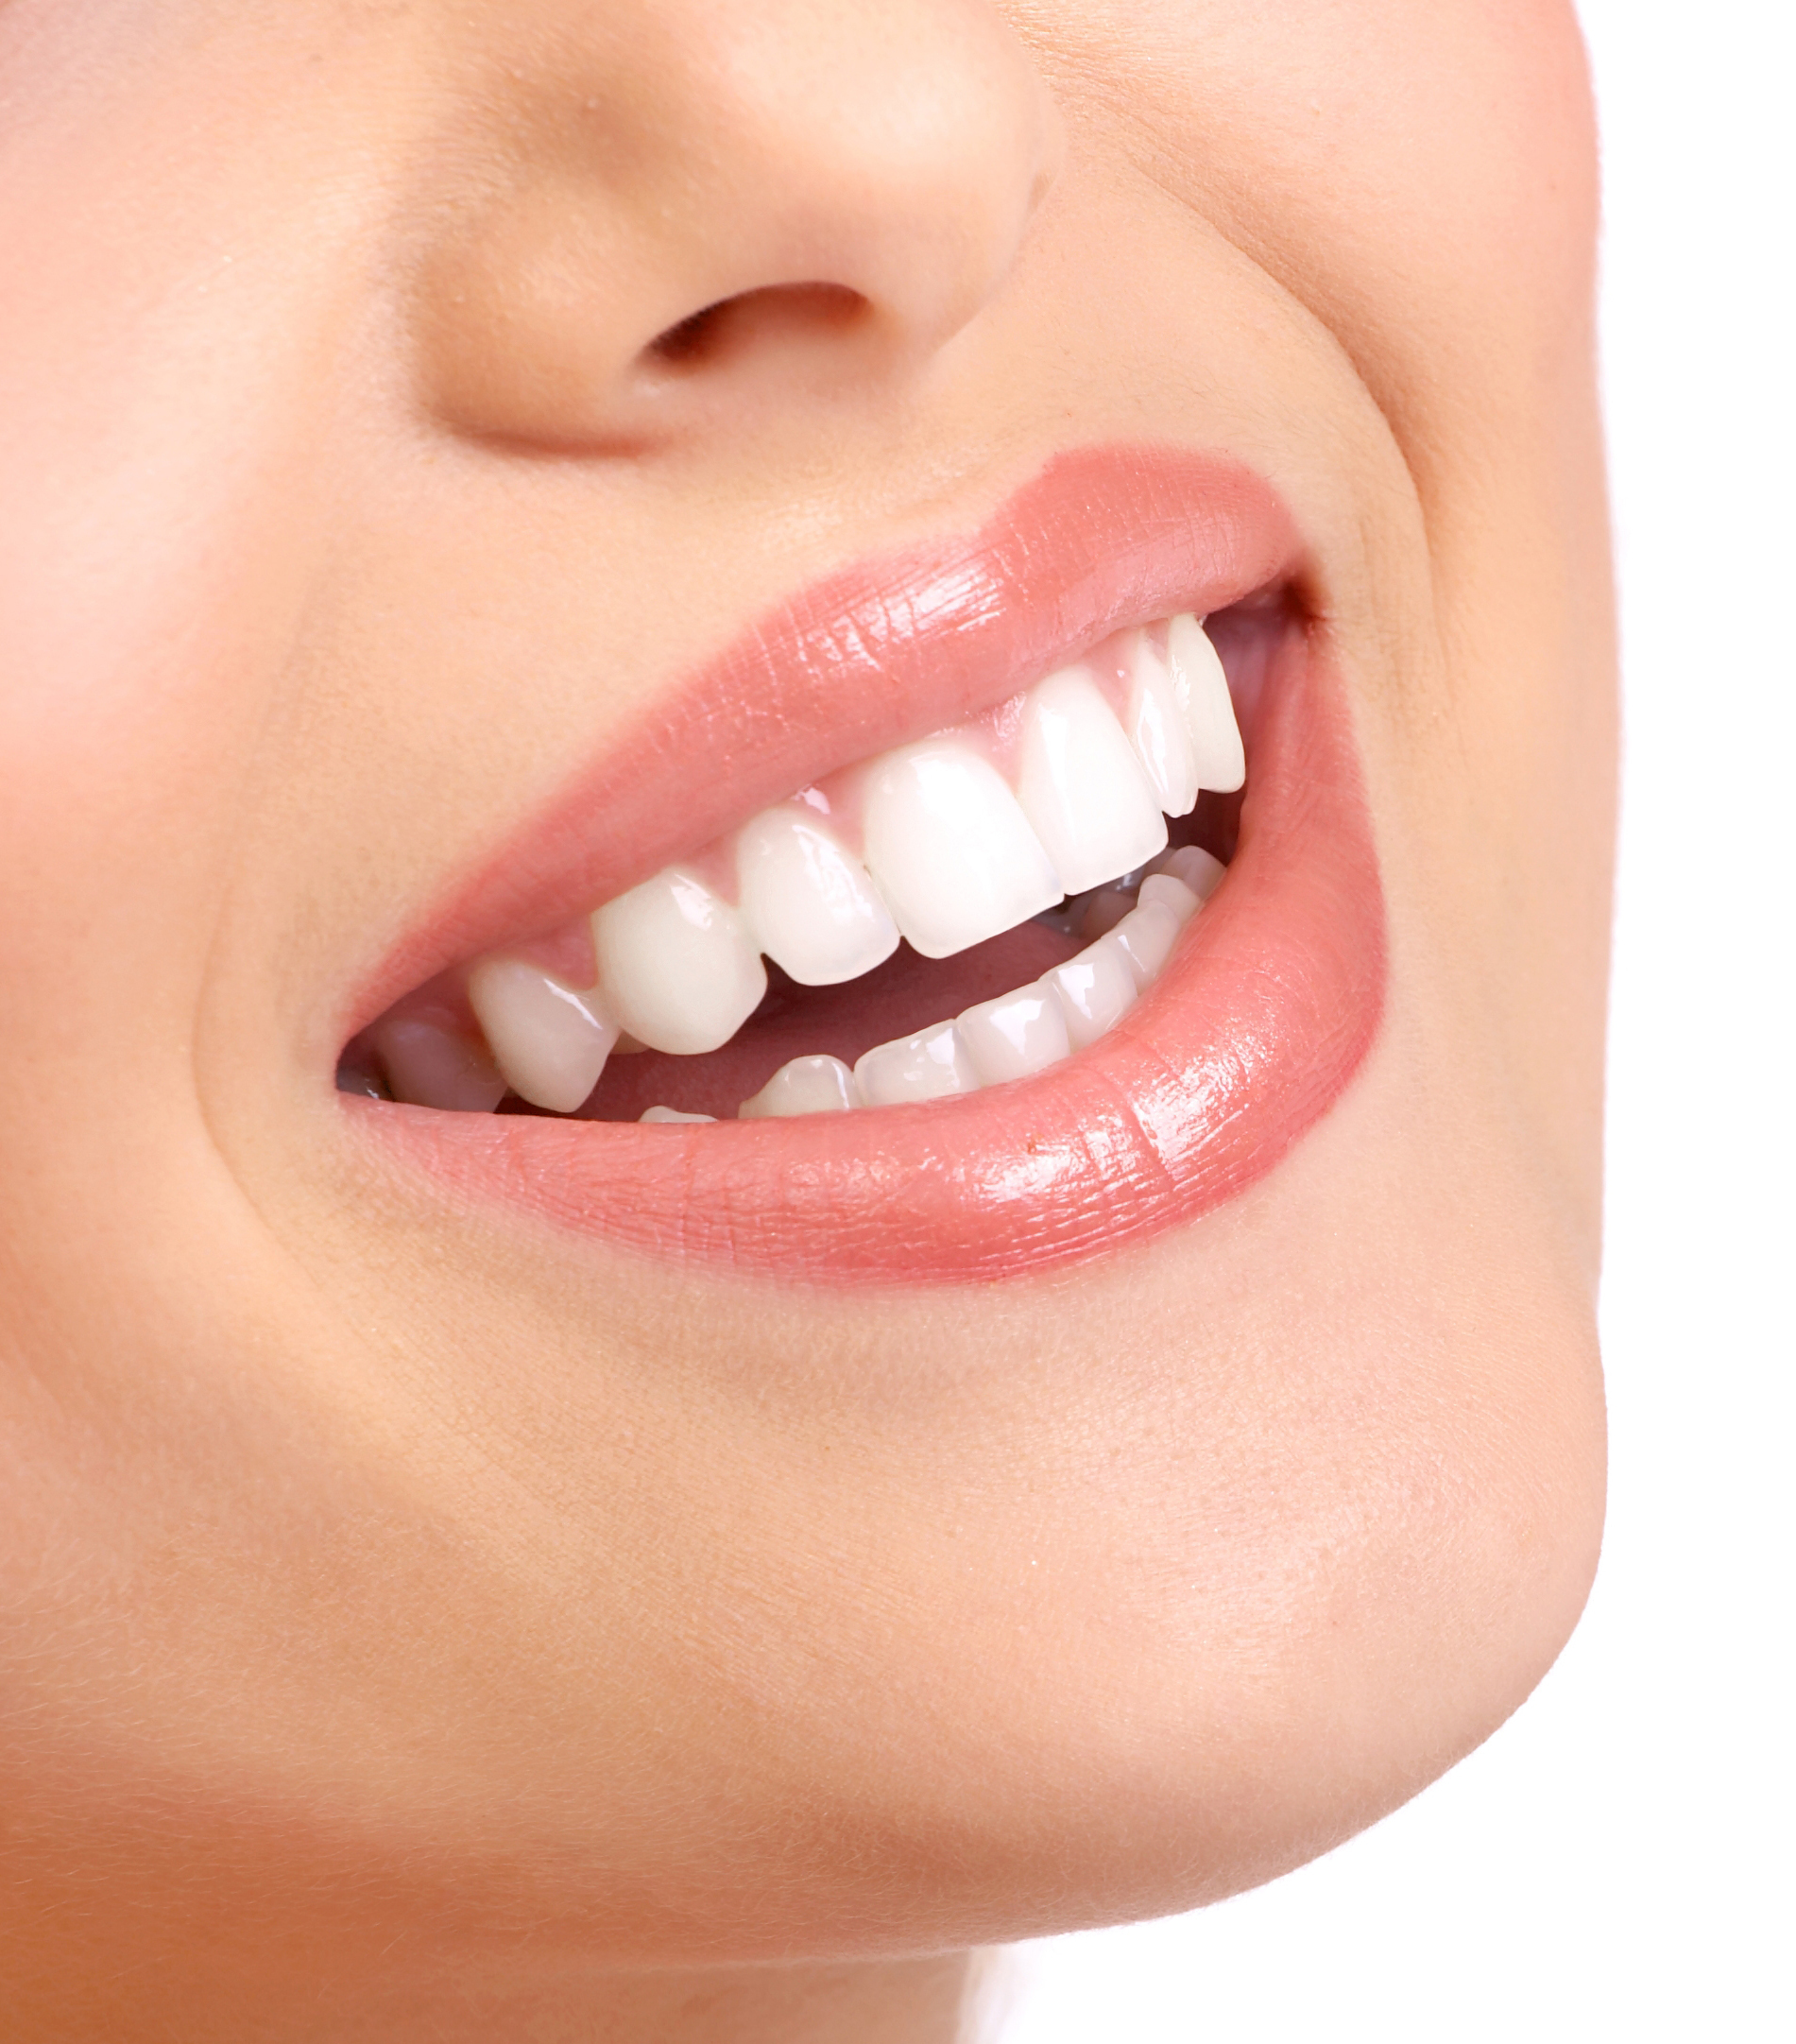 san juan capistrano teeth whitening